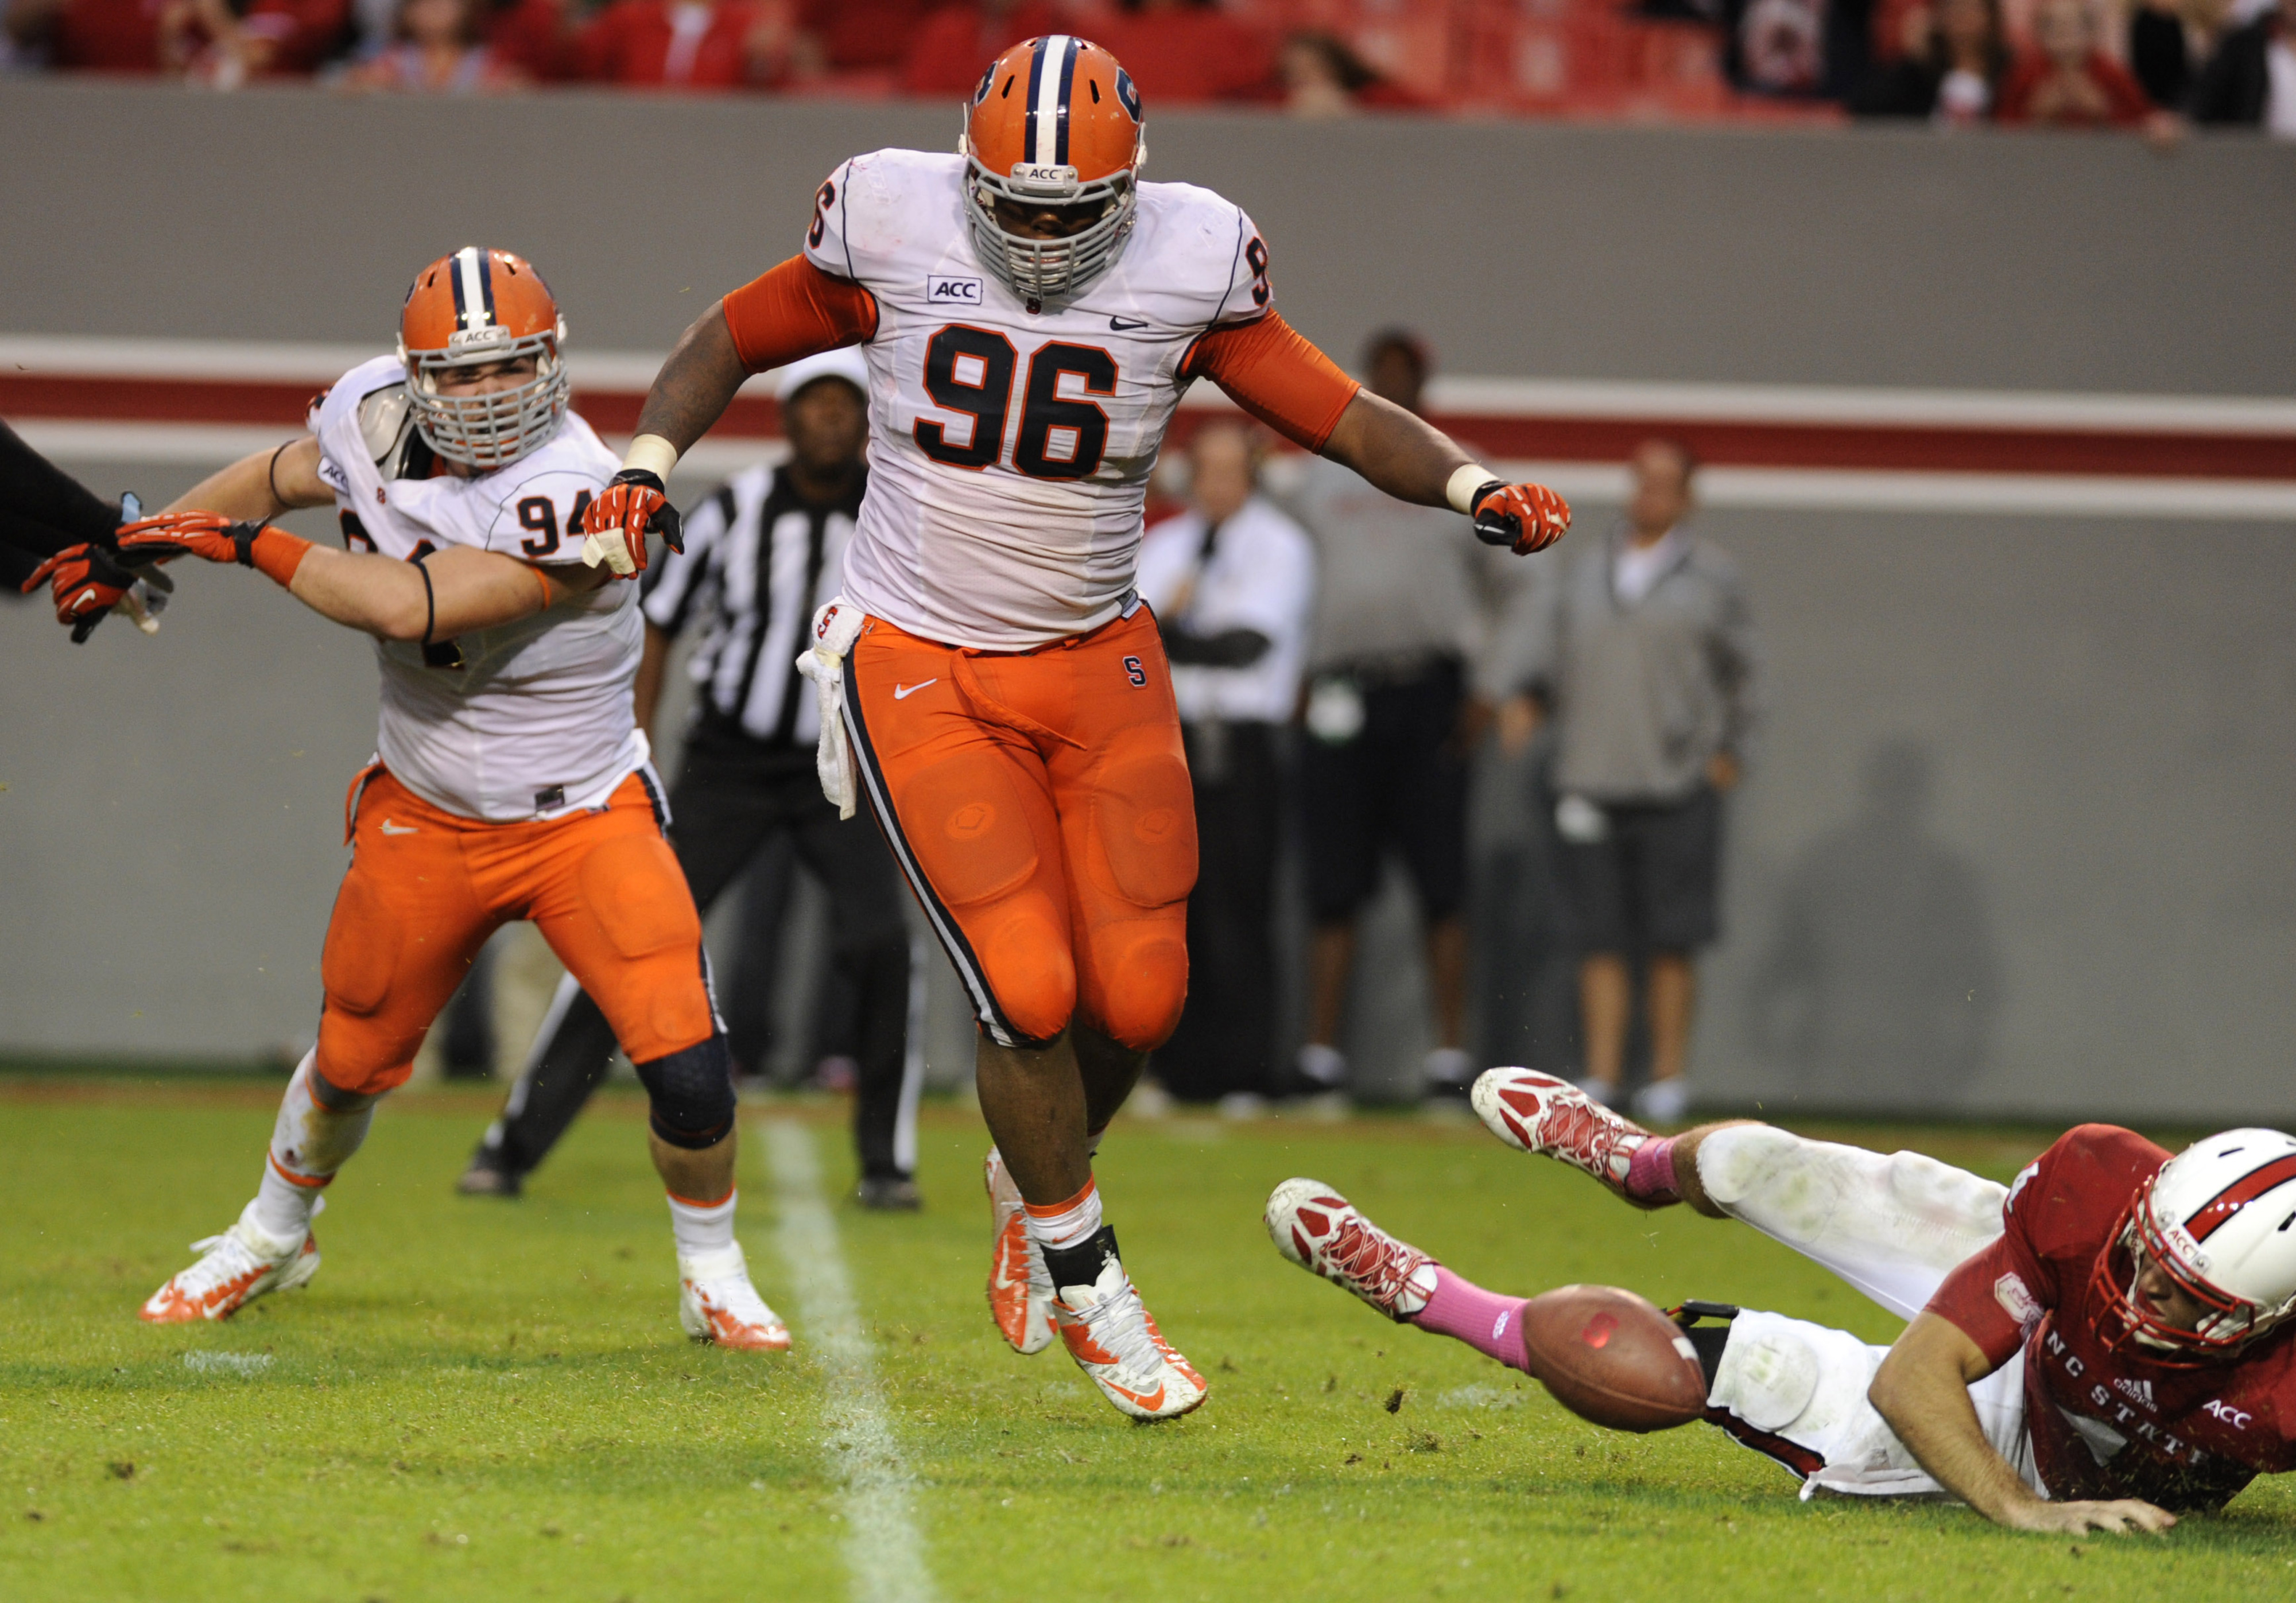 Jay Bromley causes a fumble